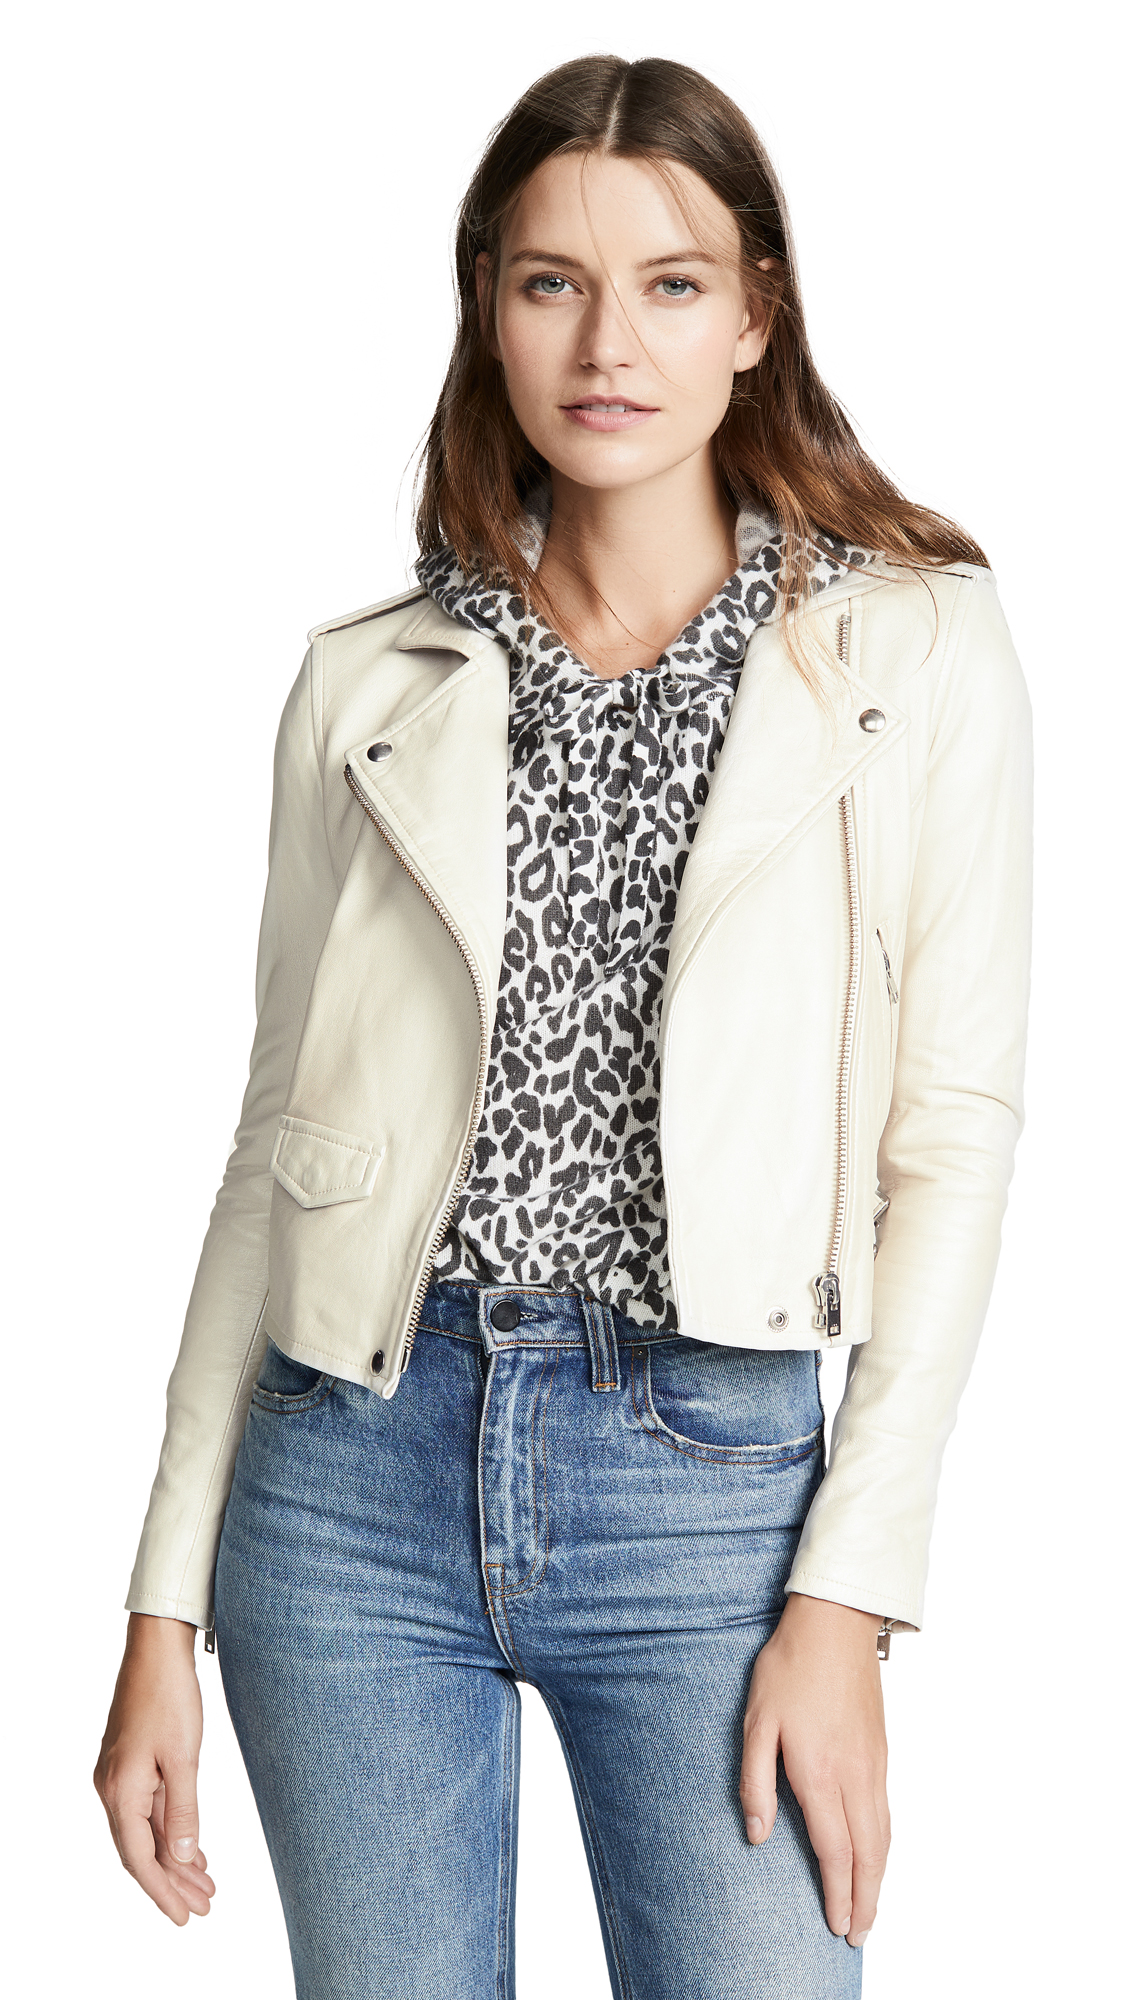 Ashville Jacket in Pearly White